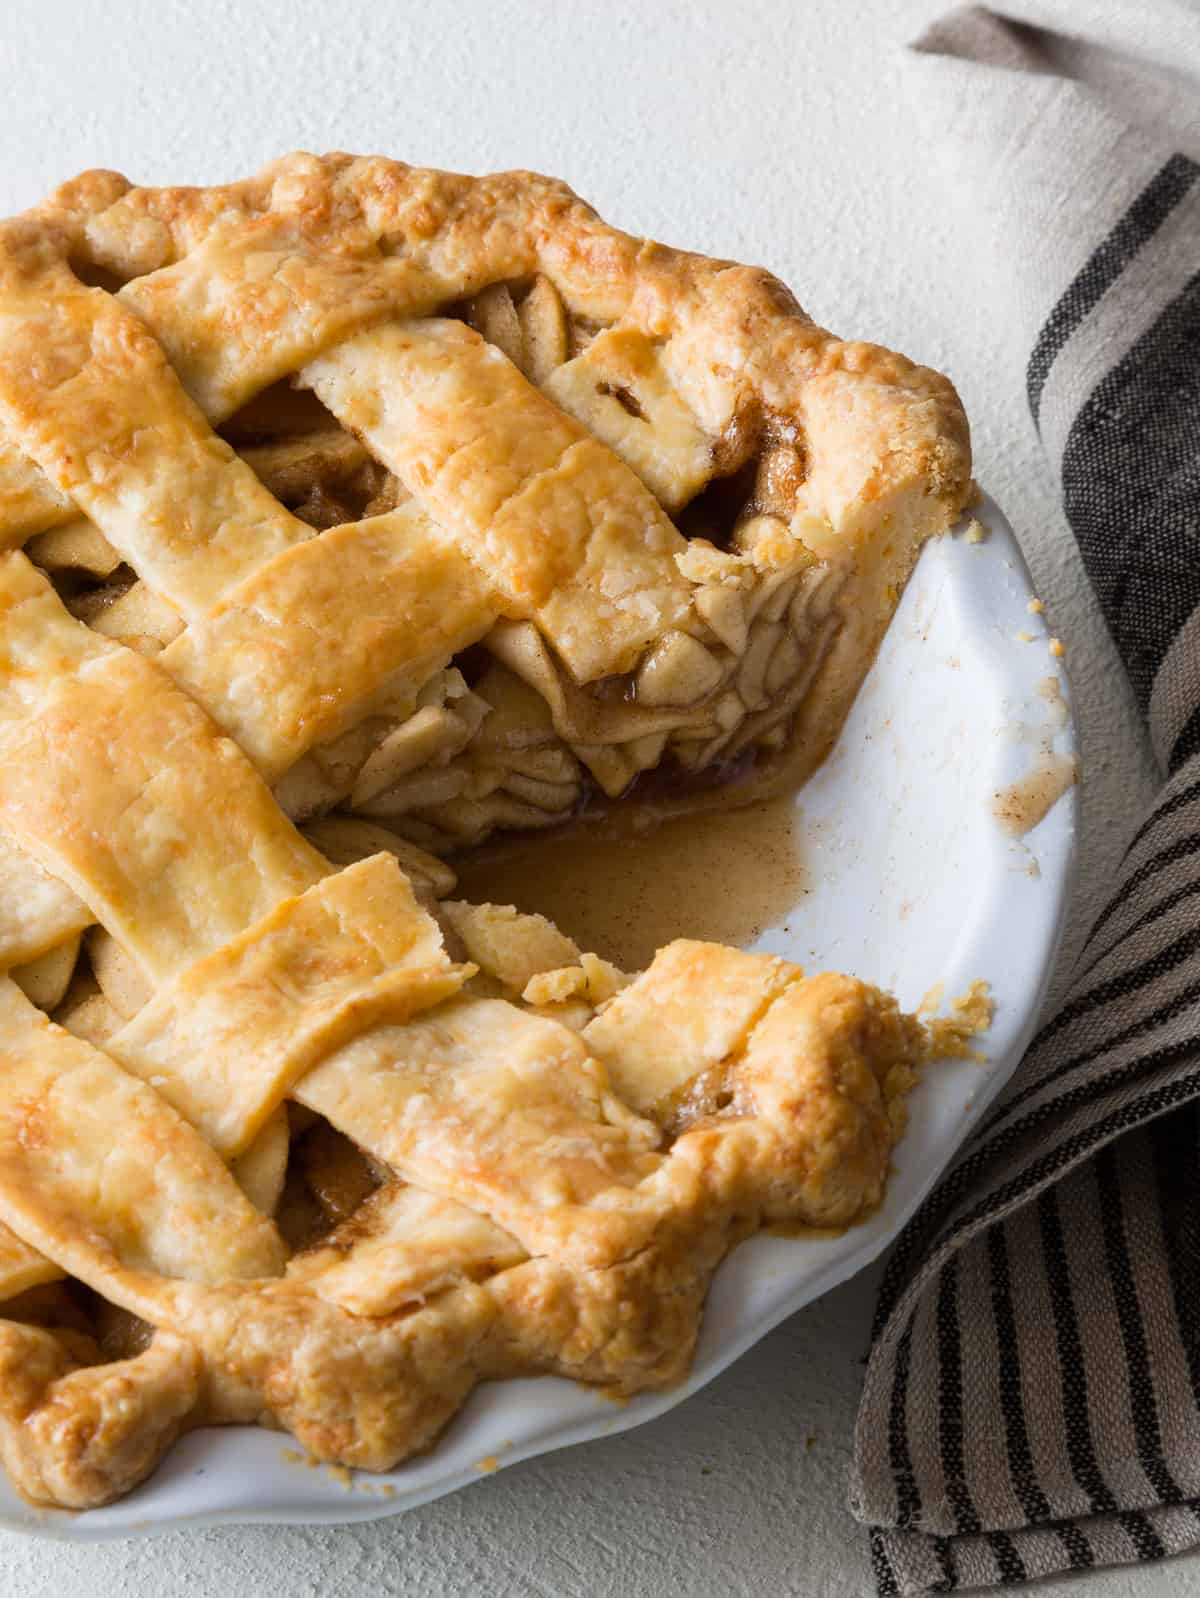 Brown Butter Apple Pie with a Cheddar Crust - Spoon Fork Bacon